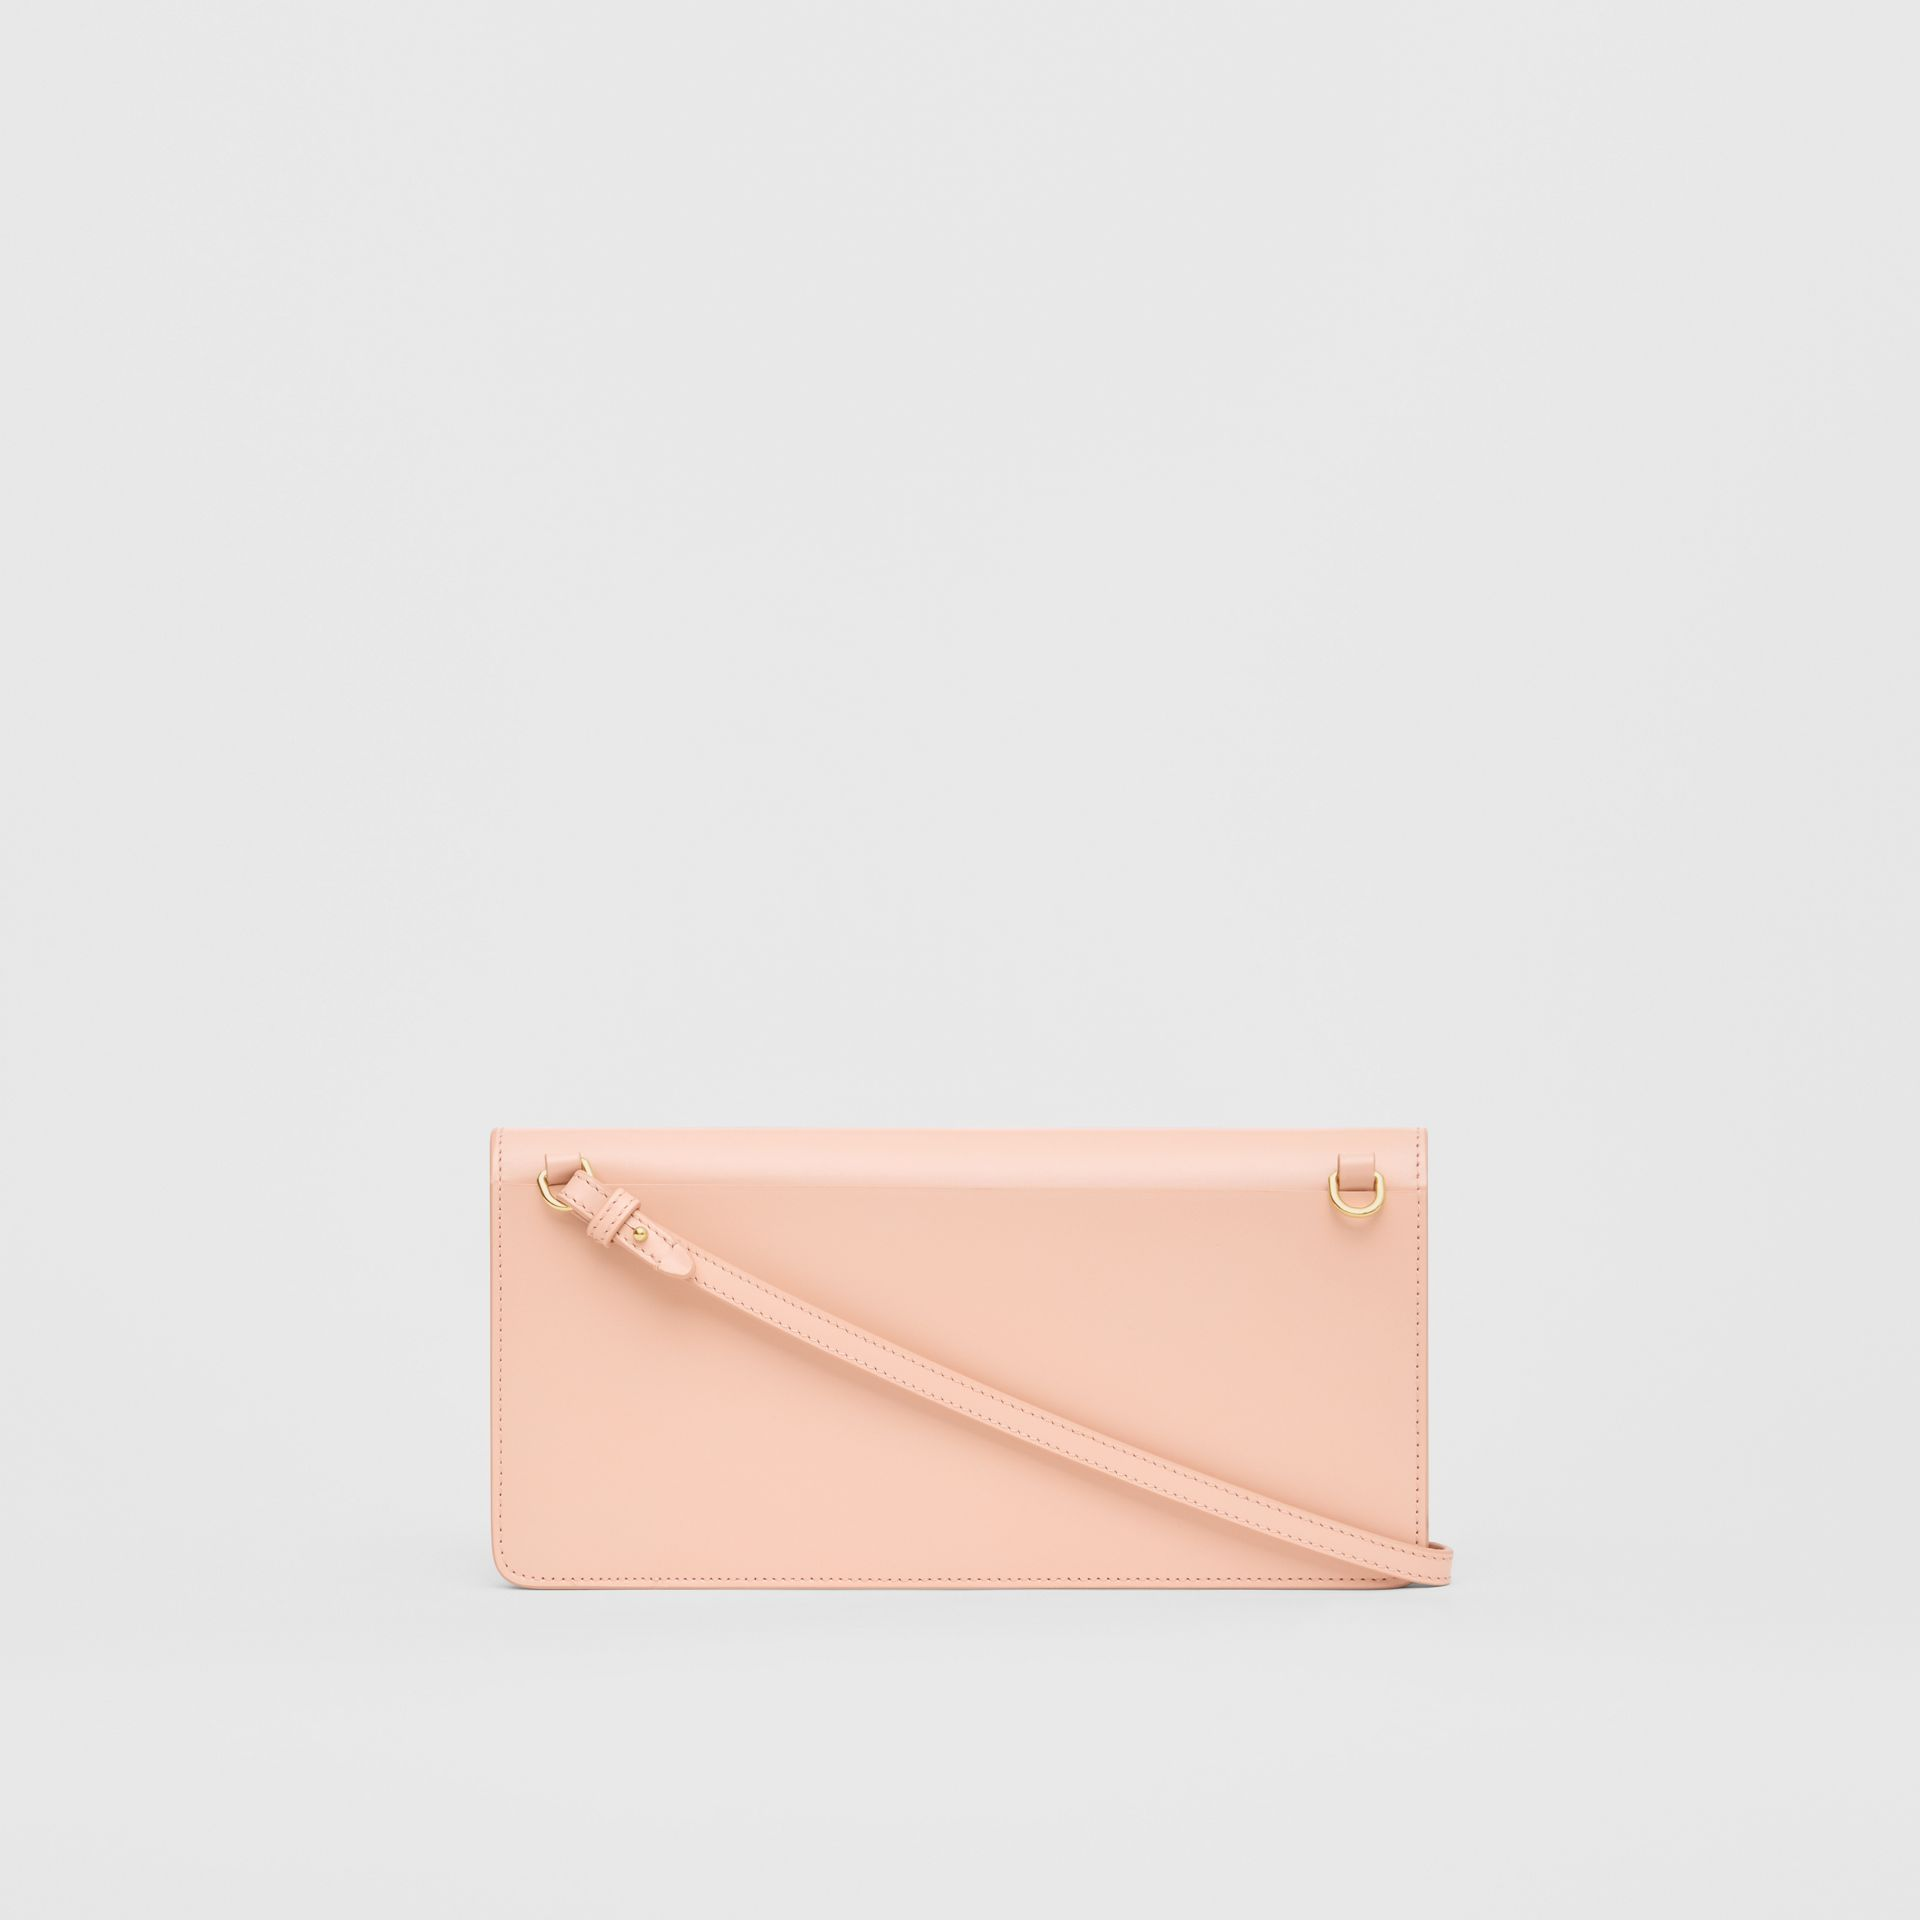 Horseferry Print Leather Bag with Detachable Strap in Blush Pink - Women | Burberry - gallery image 7